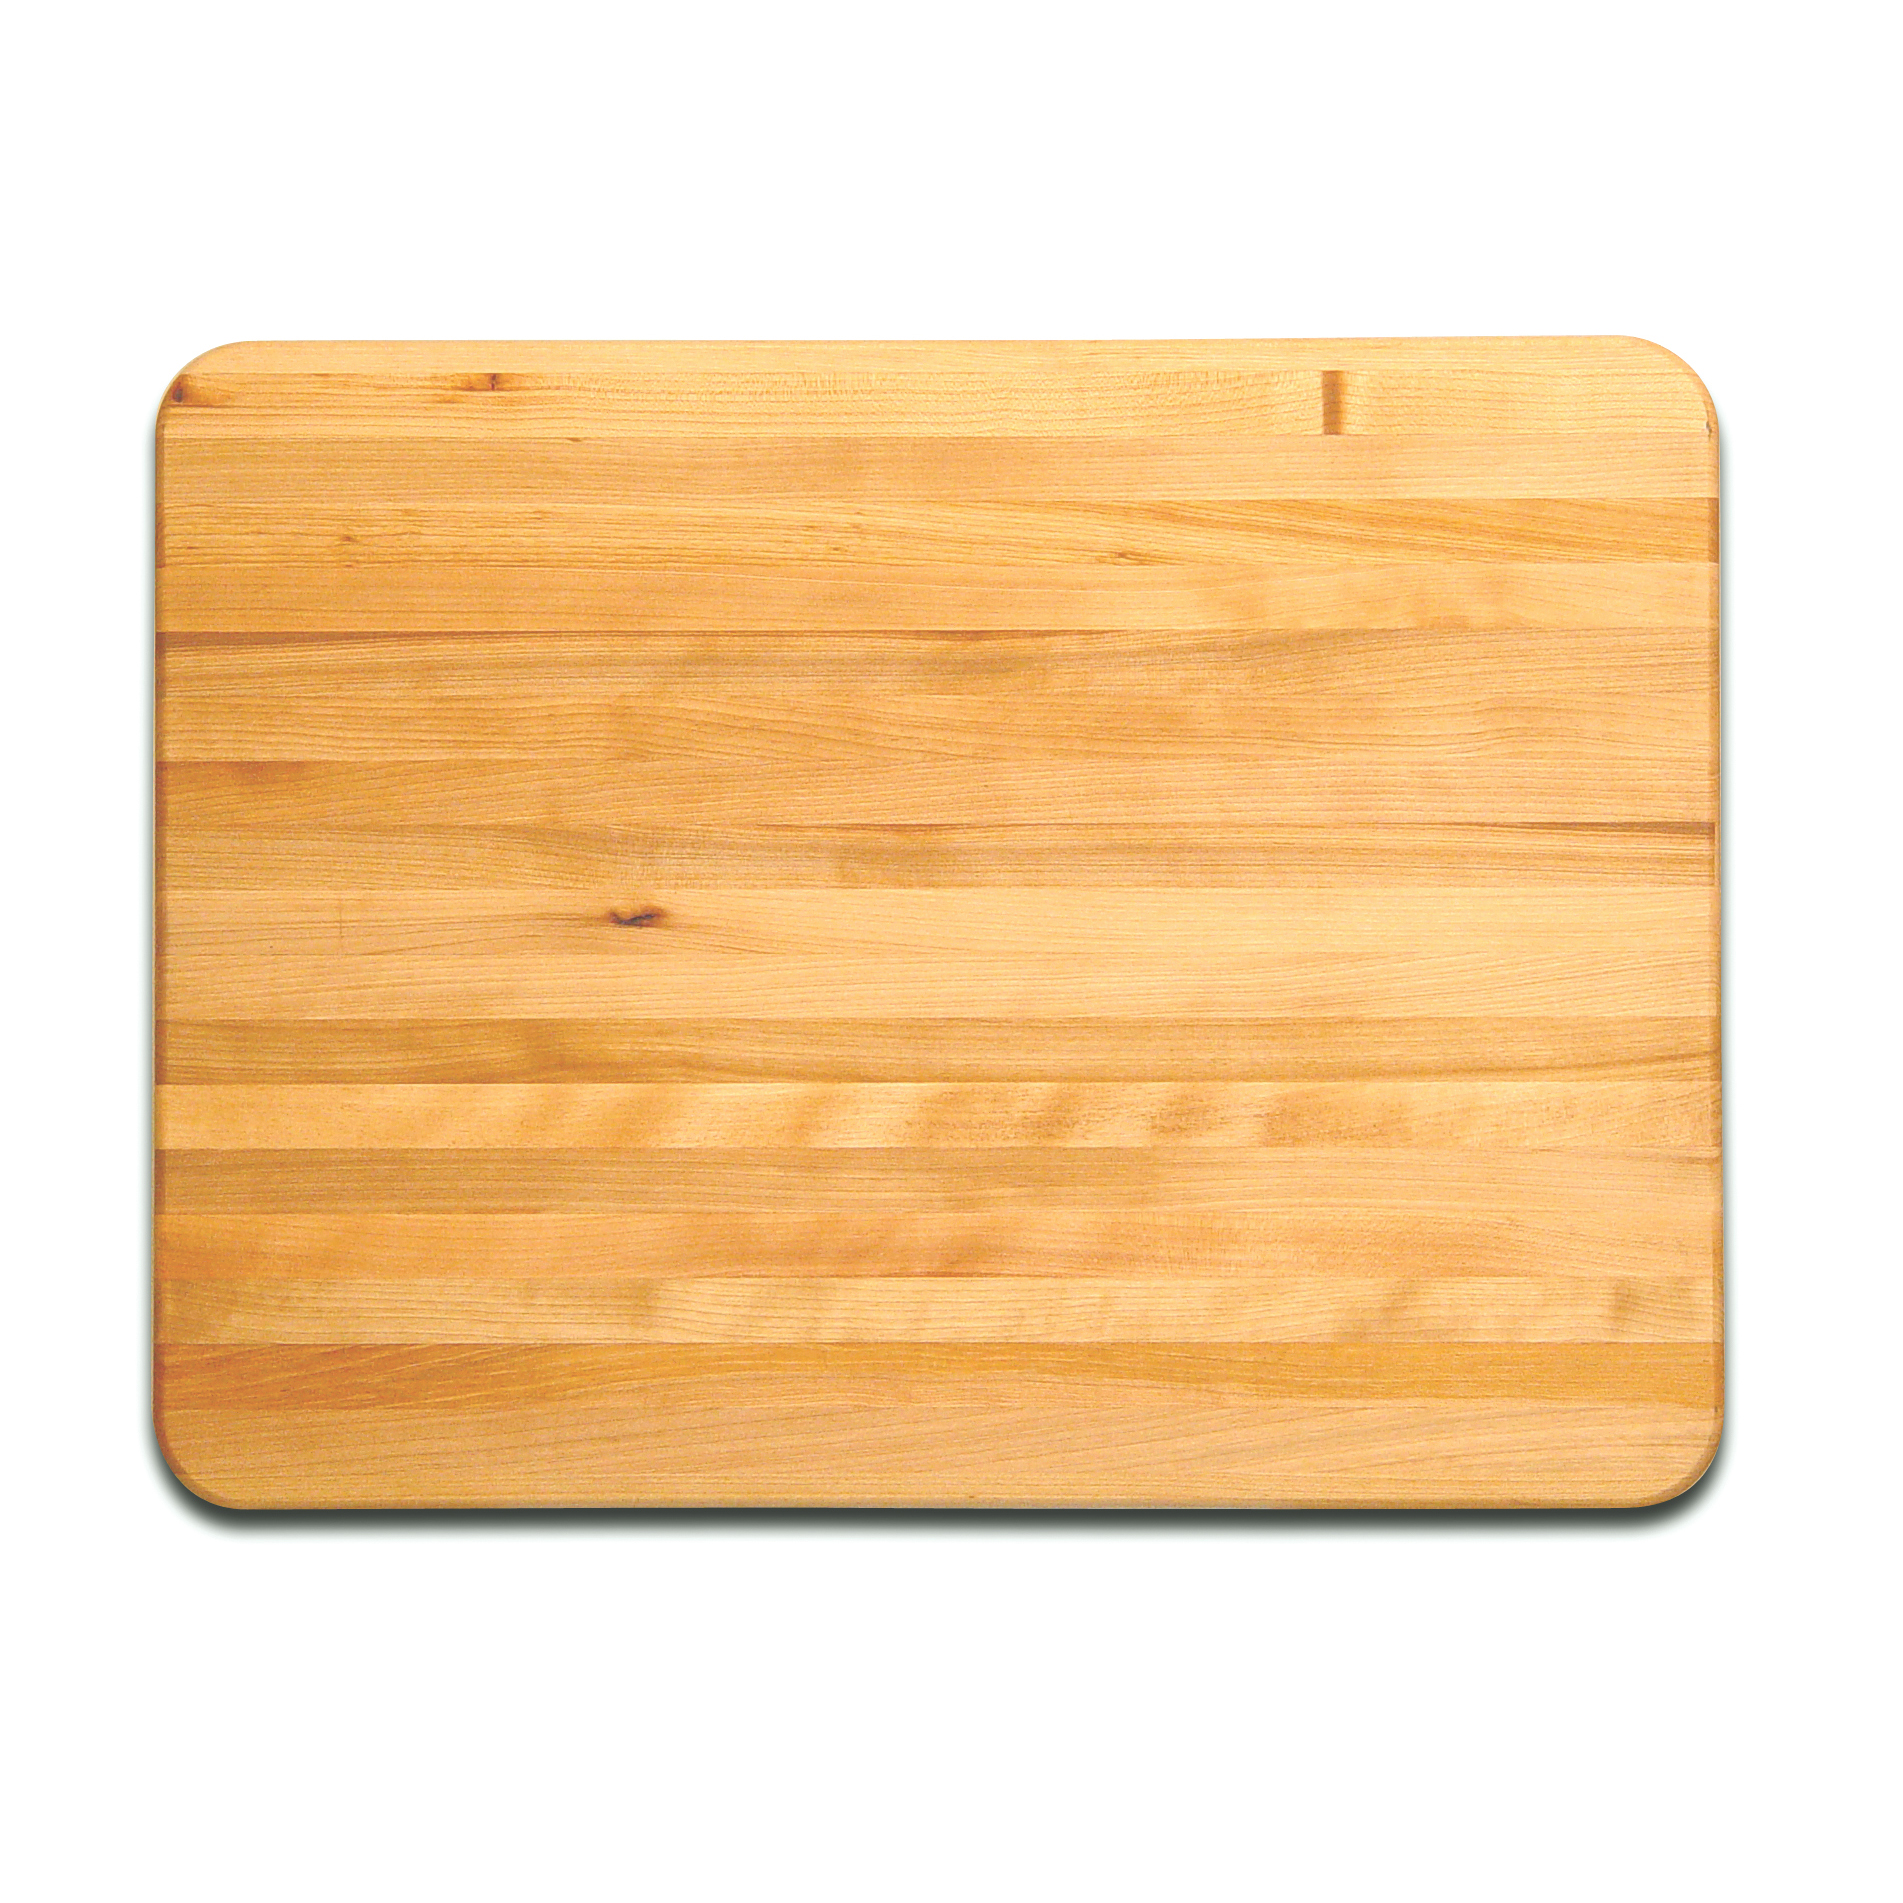 pro series board reversible by catskill craftsmen price